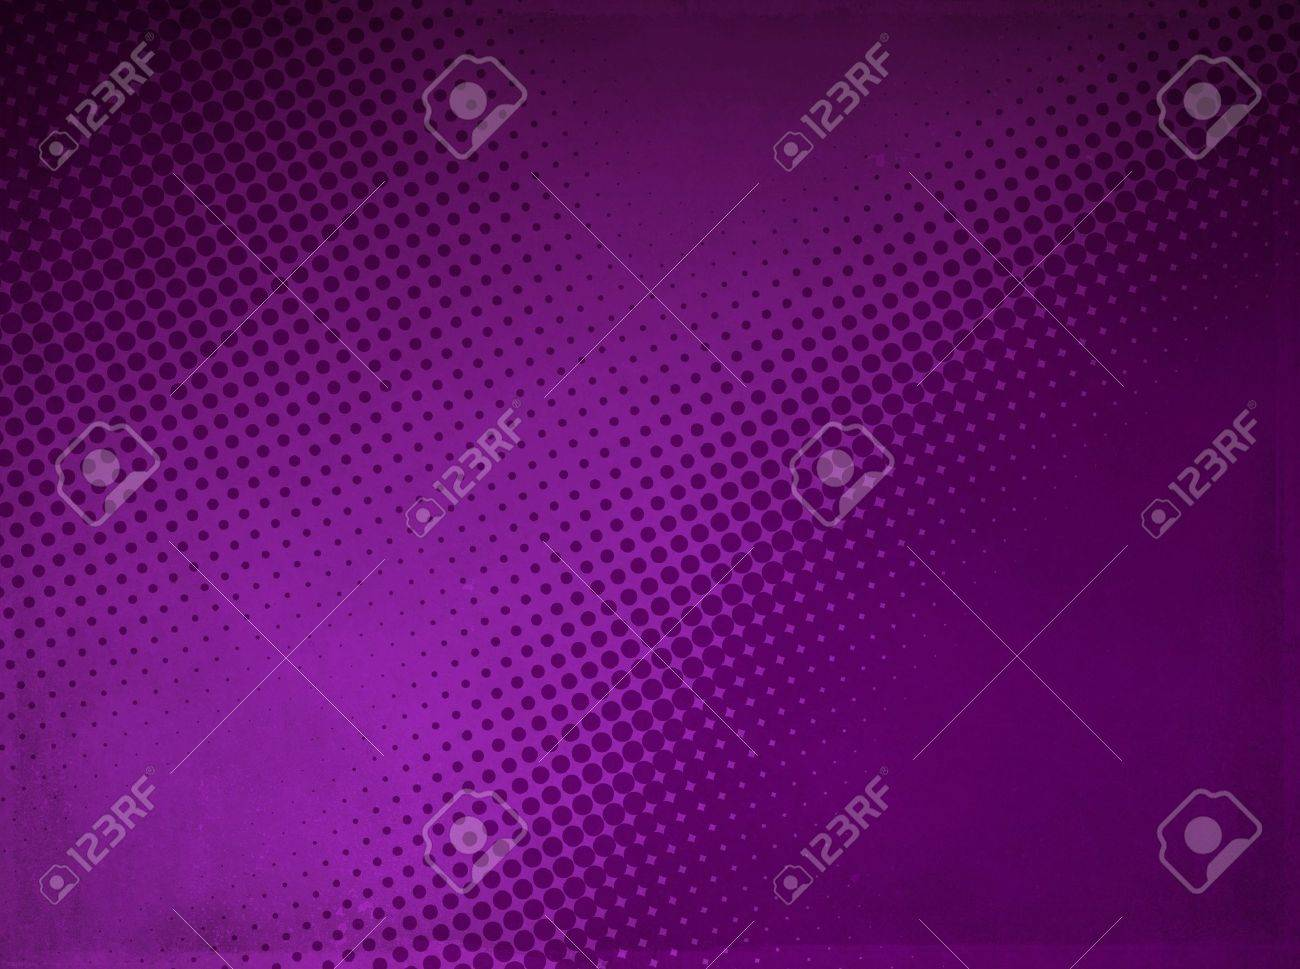 Grunge abstract halftone background made of a light and dark purple dotted pattern Stock Photo - 13032331